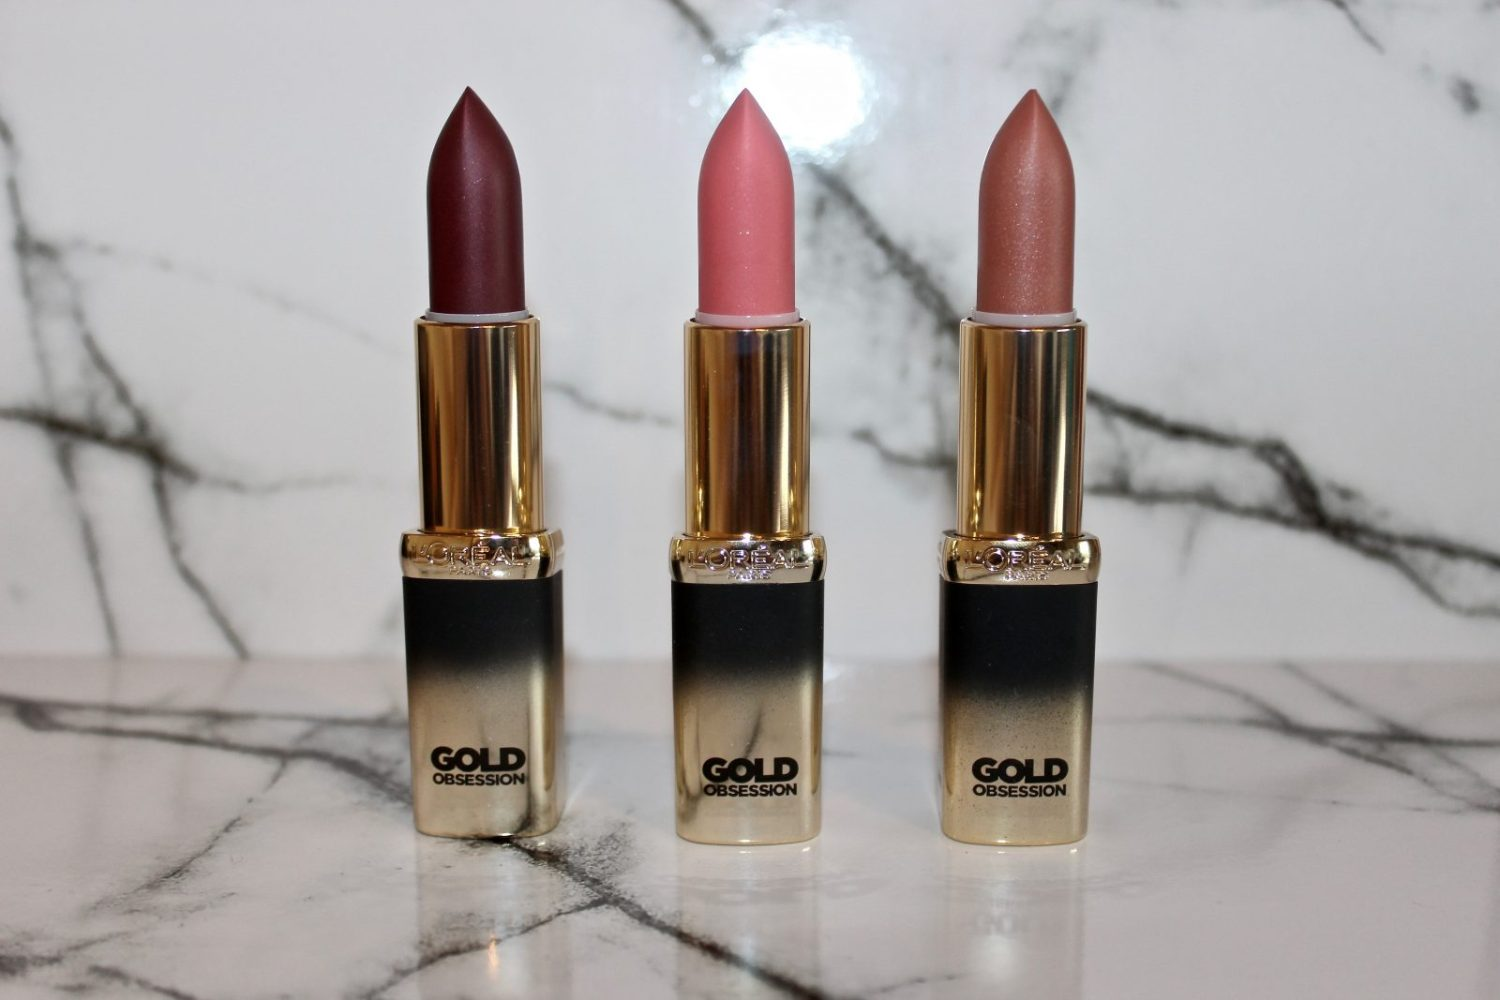 Loreal color riche gold obsession lipstick